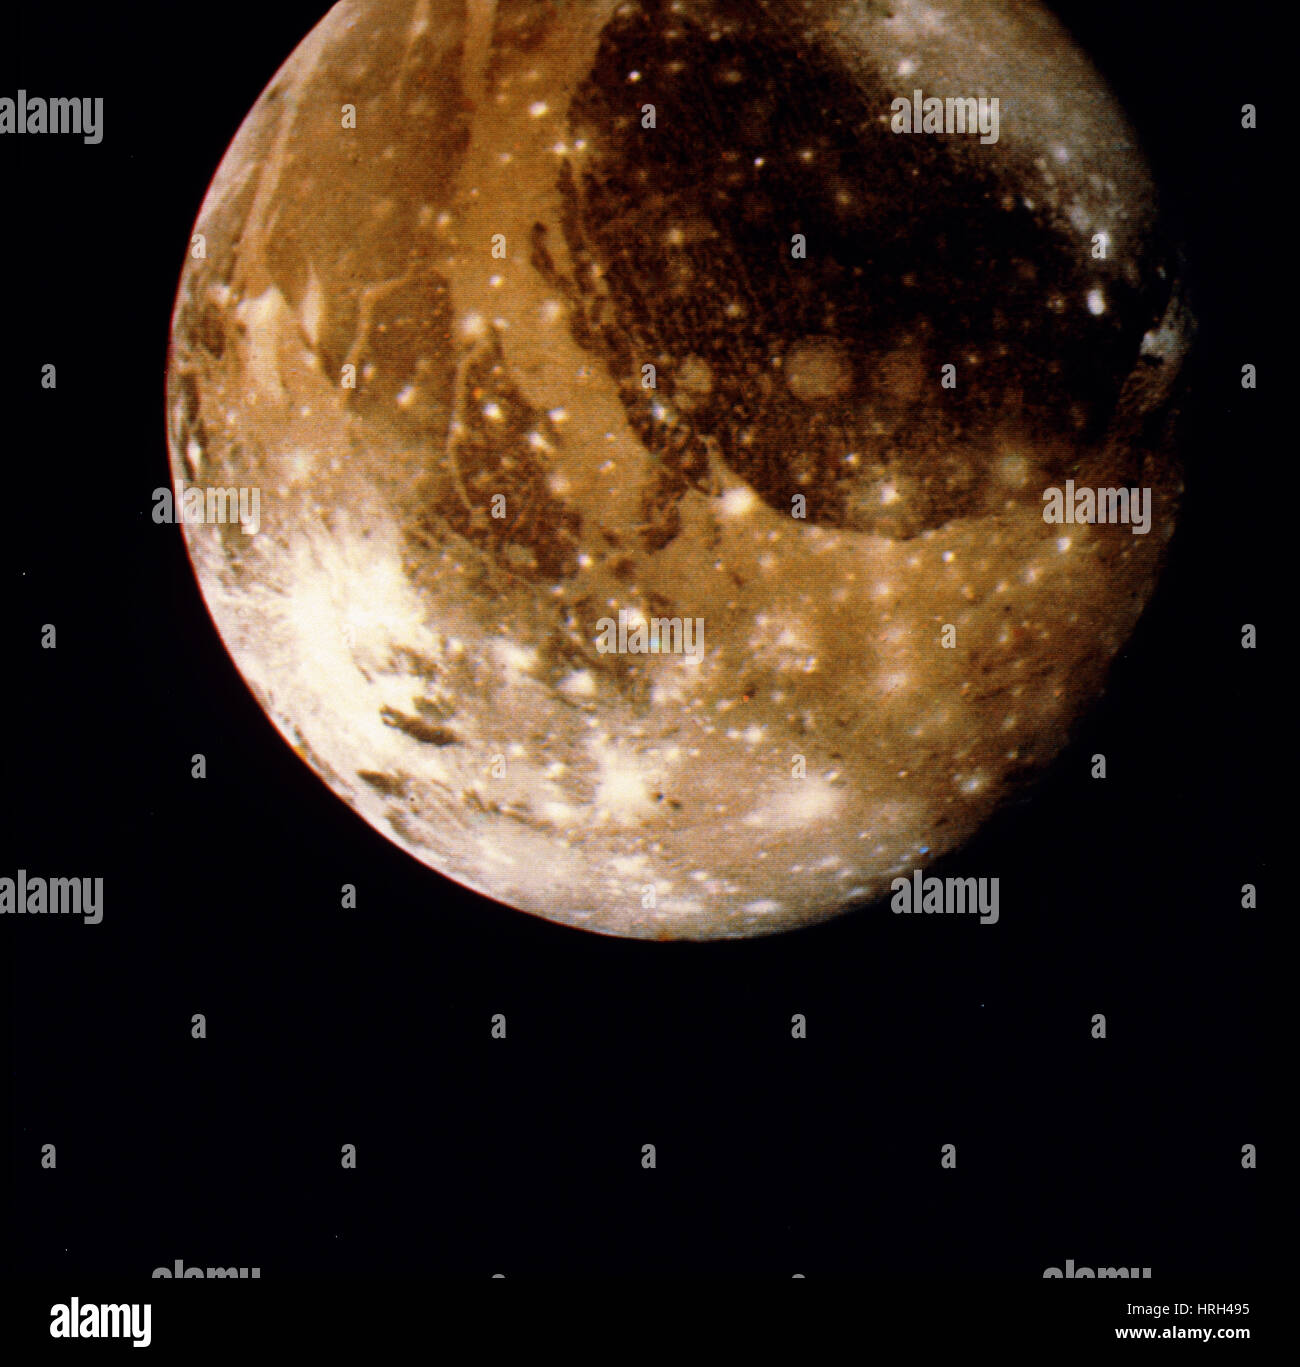 Ganymede, Moon of Jupiter, Voyager 2 Image - Stock Image